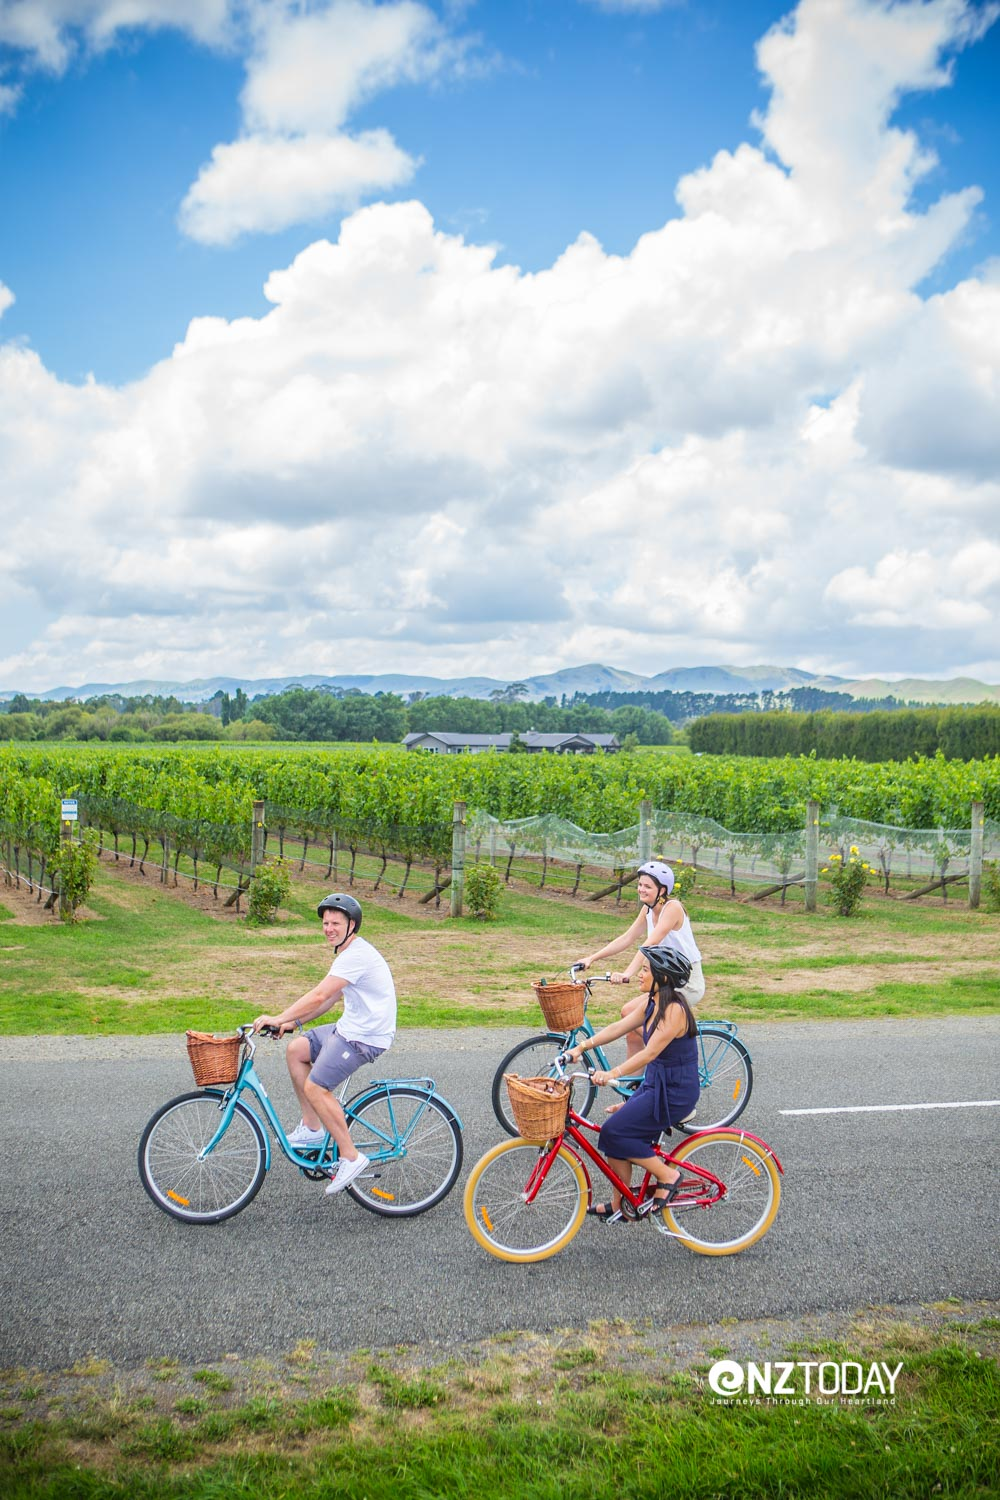 Cycling the vines Photo: Jeff McEwan